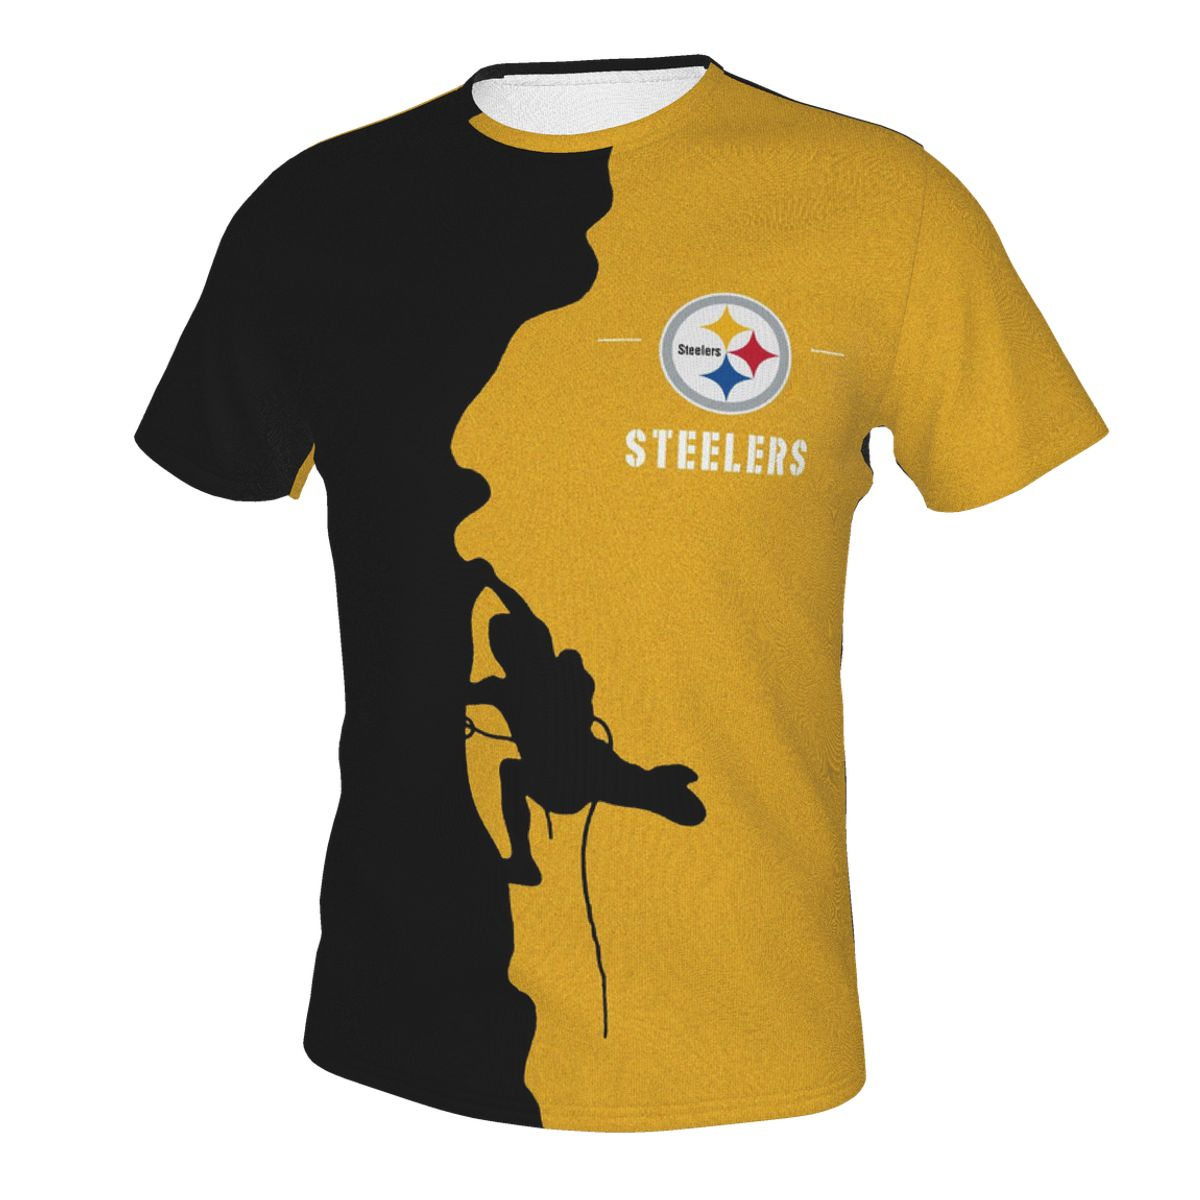 Climber Steelers T-shirts For Men